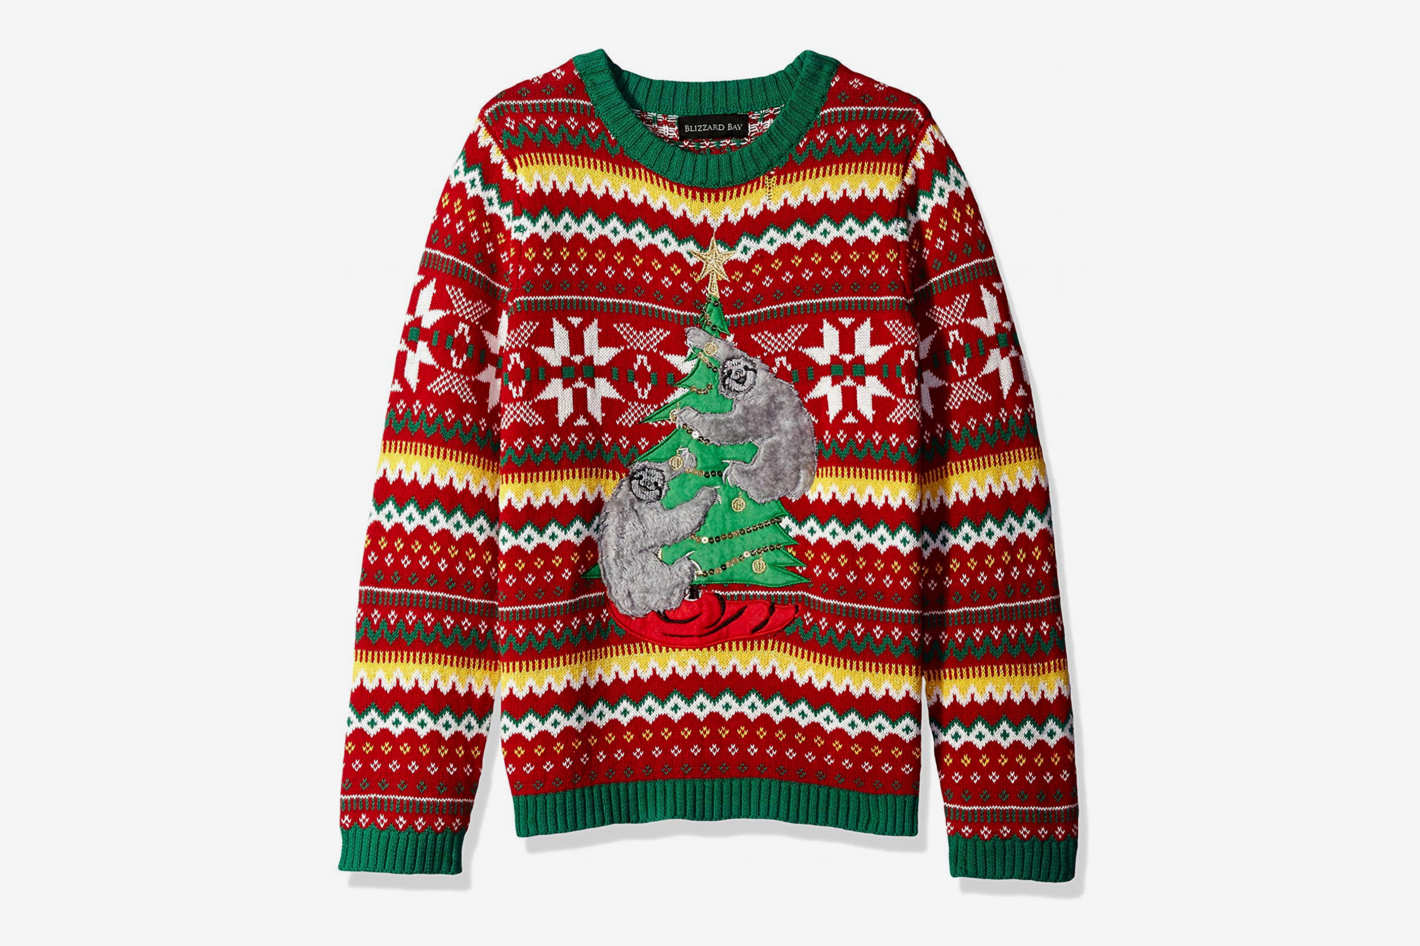 20 Best Ugly Christmas Sweaters 2018